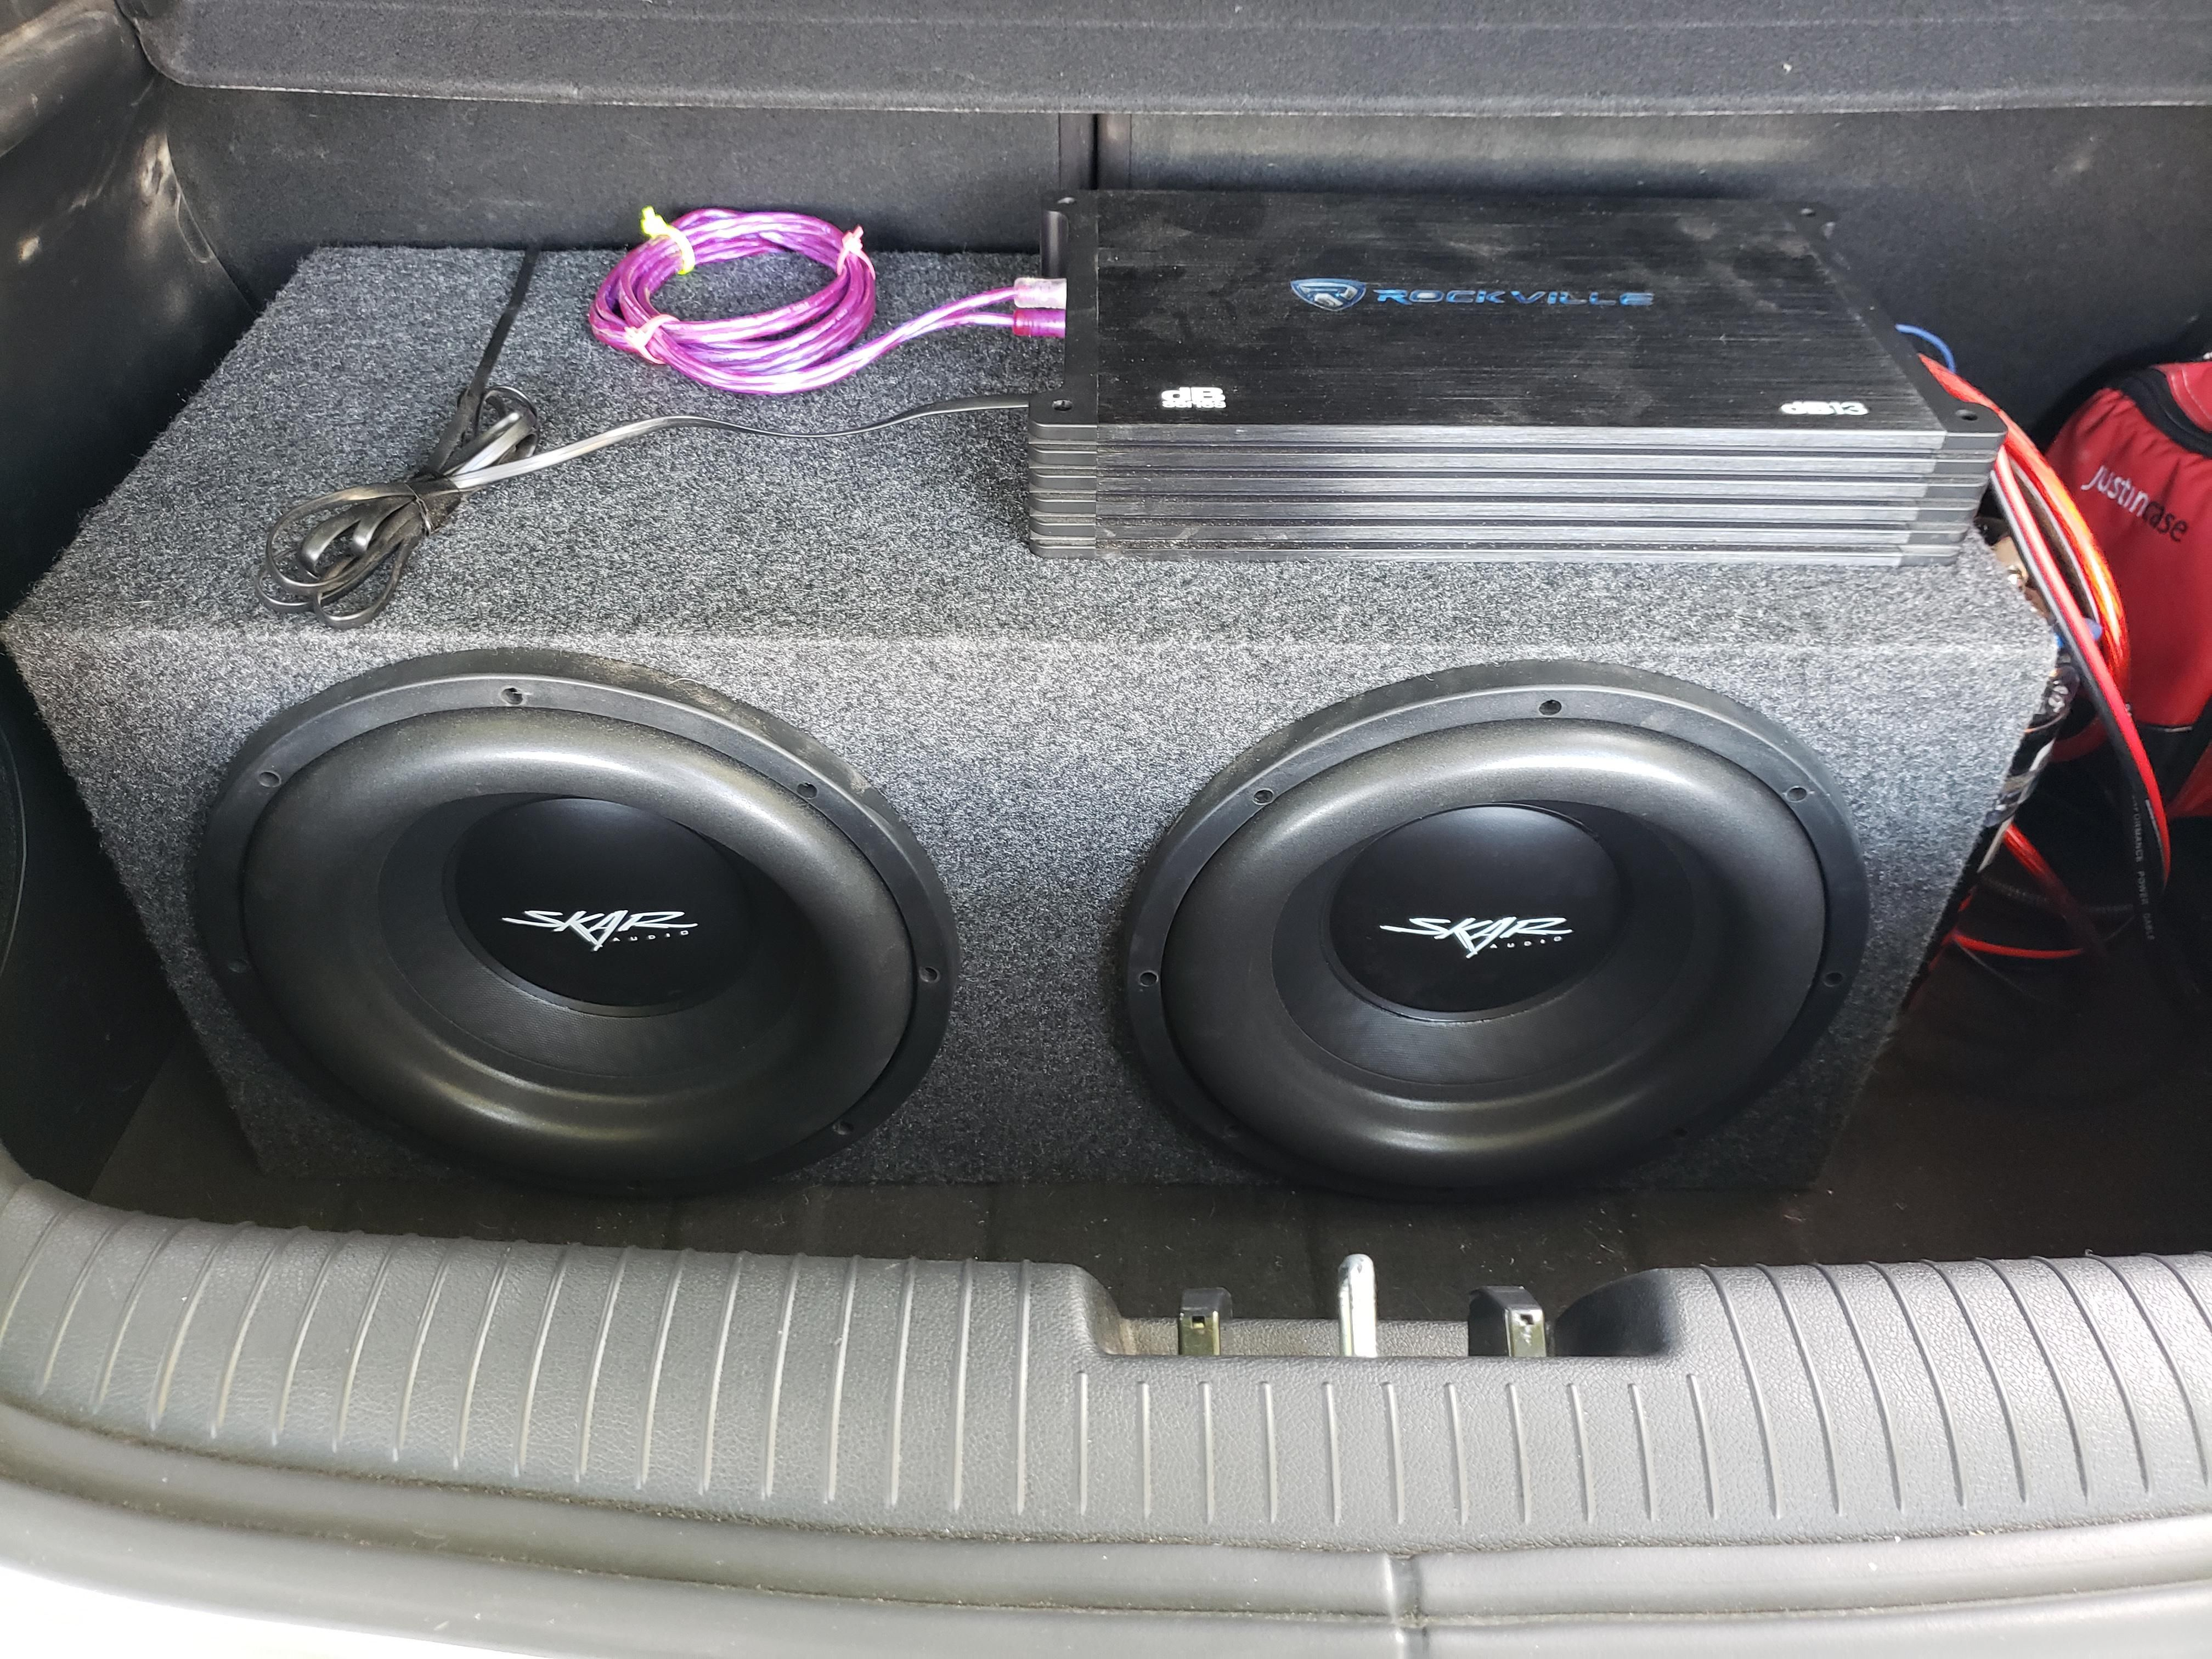 12 Skars 3000w Rockville Amp And A 2 Farad Capacitor On The Side Rockville Capacitors Car Audio